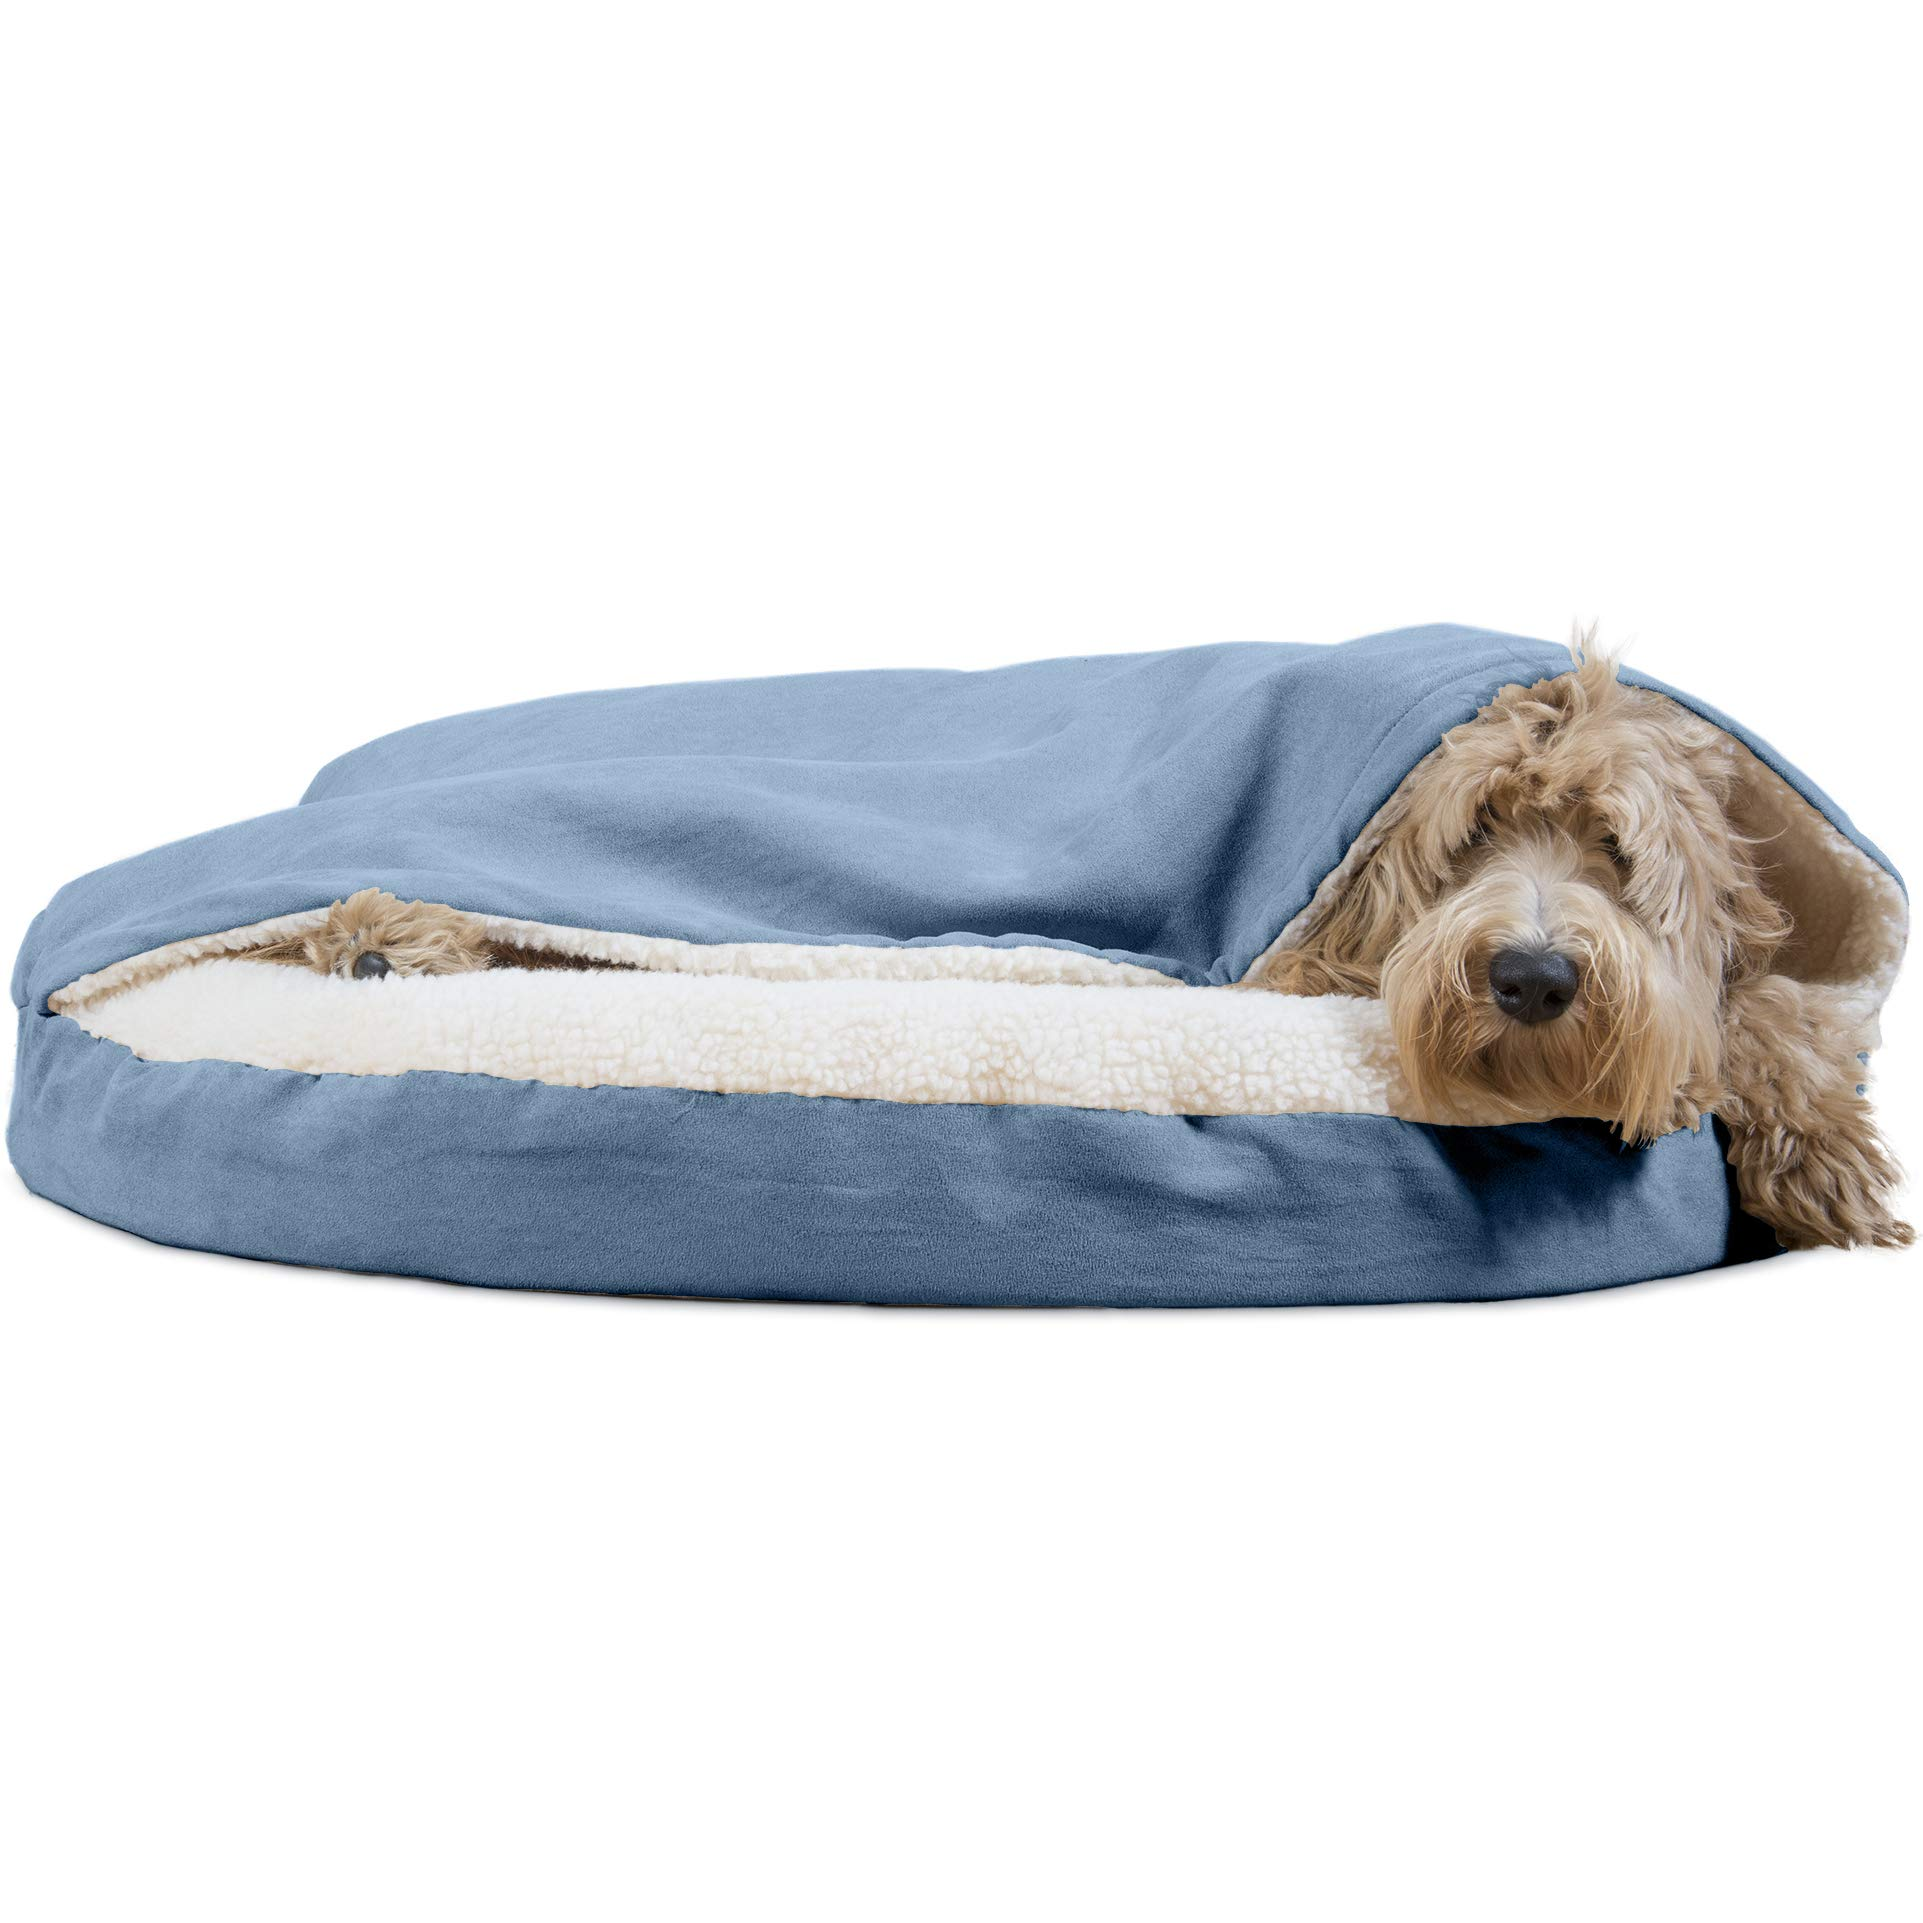 Furhaven Pet Dog Bed | Orthopedic Round Cuddle Nest Faux Sheepskin Snuggery Burrow Pet Bed for Dogs & Cats, Blue, 35-Inch